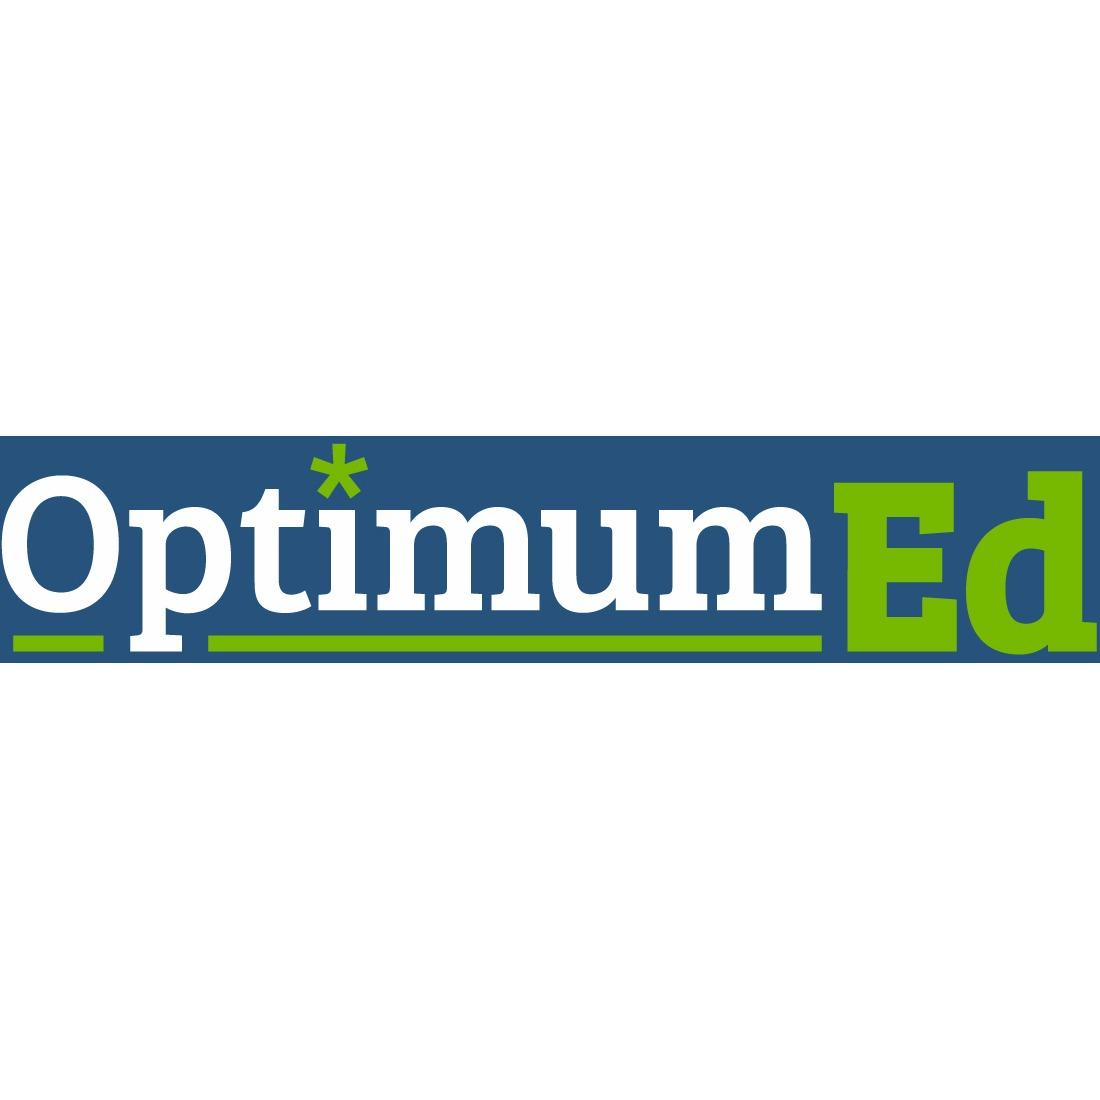 Optimum Ed